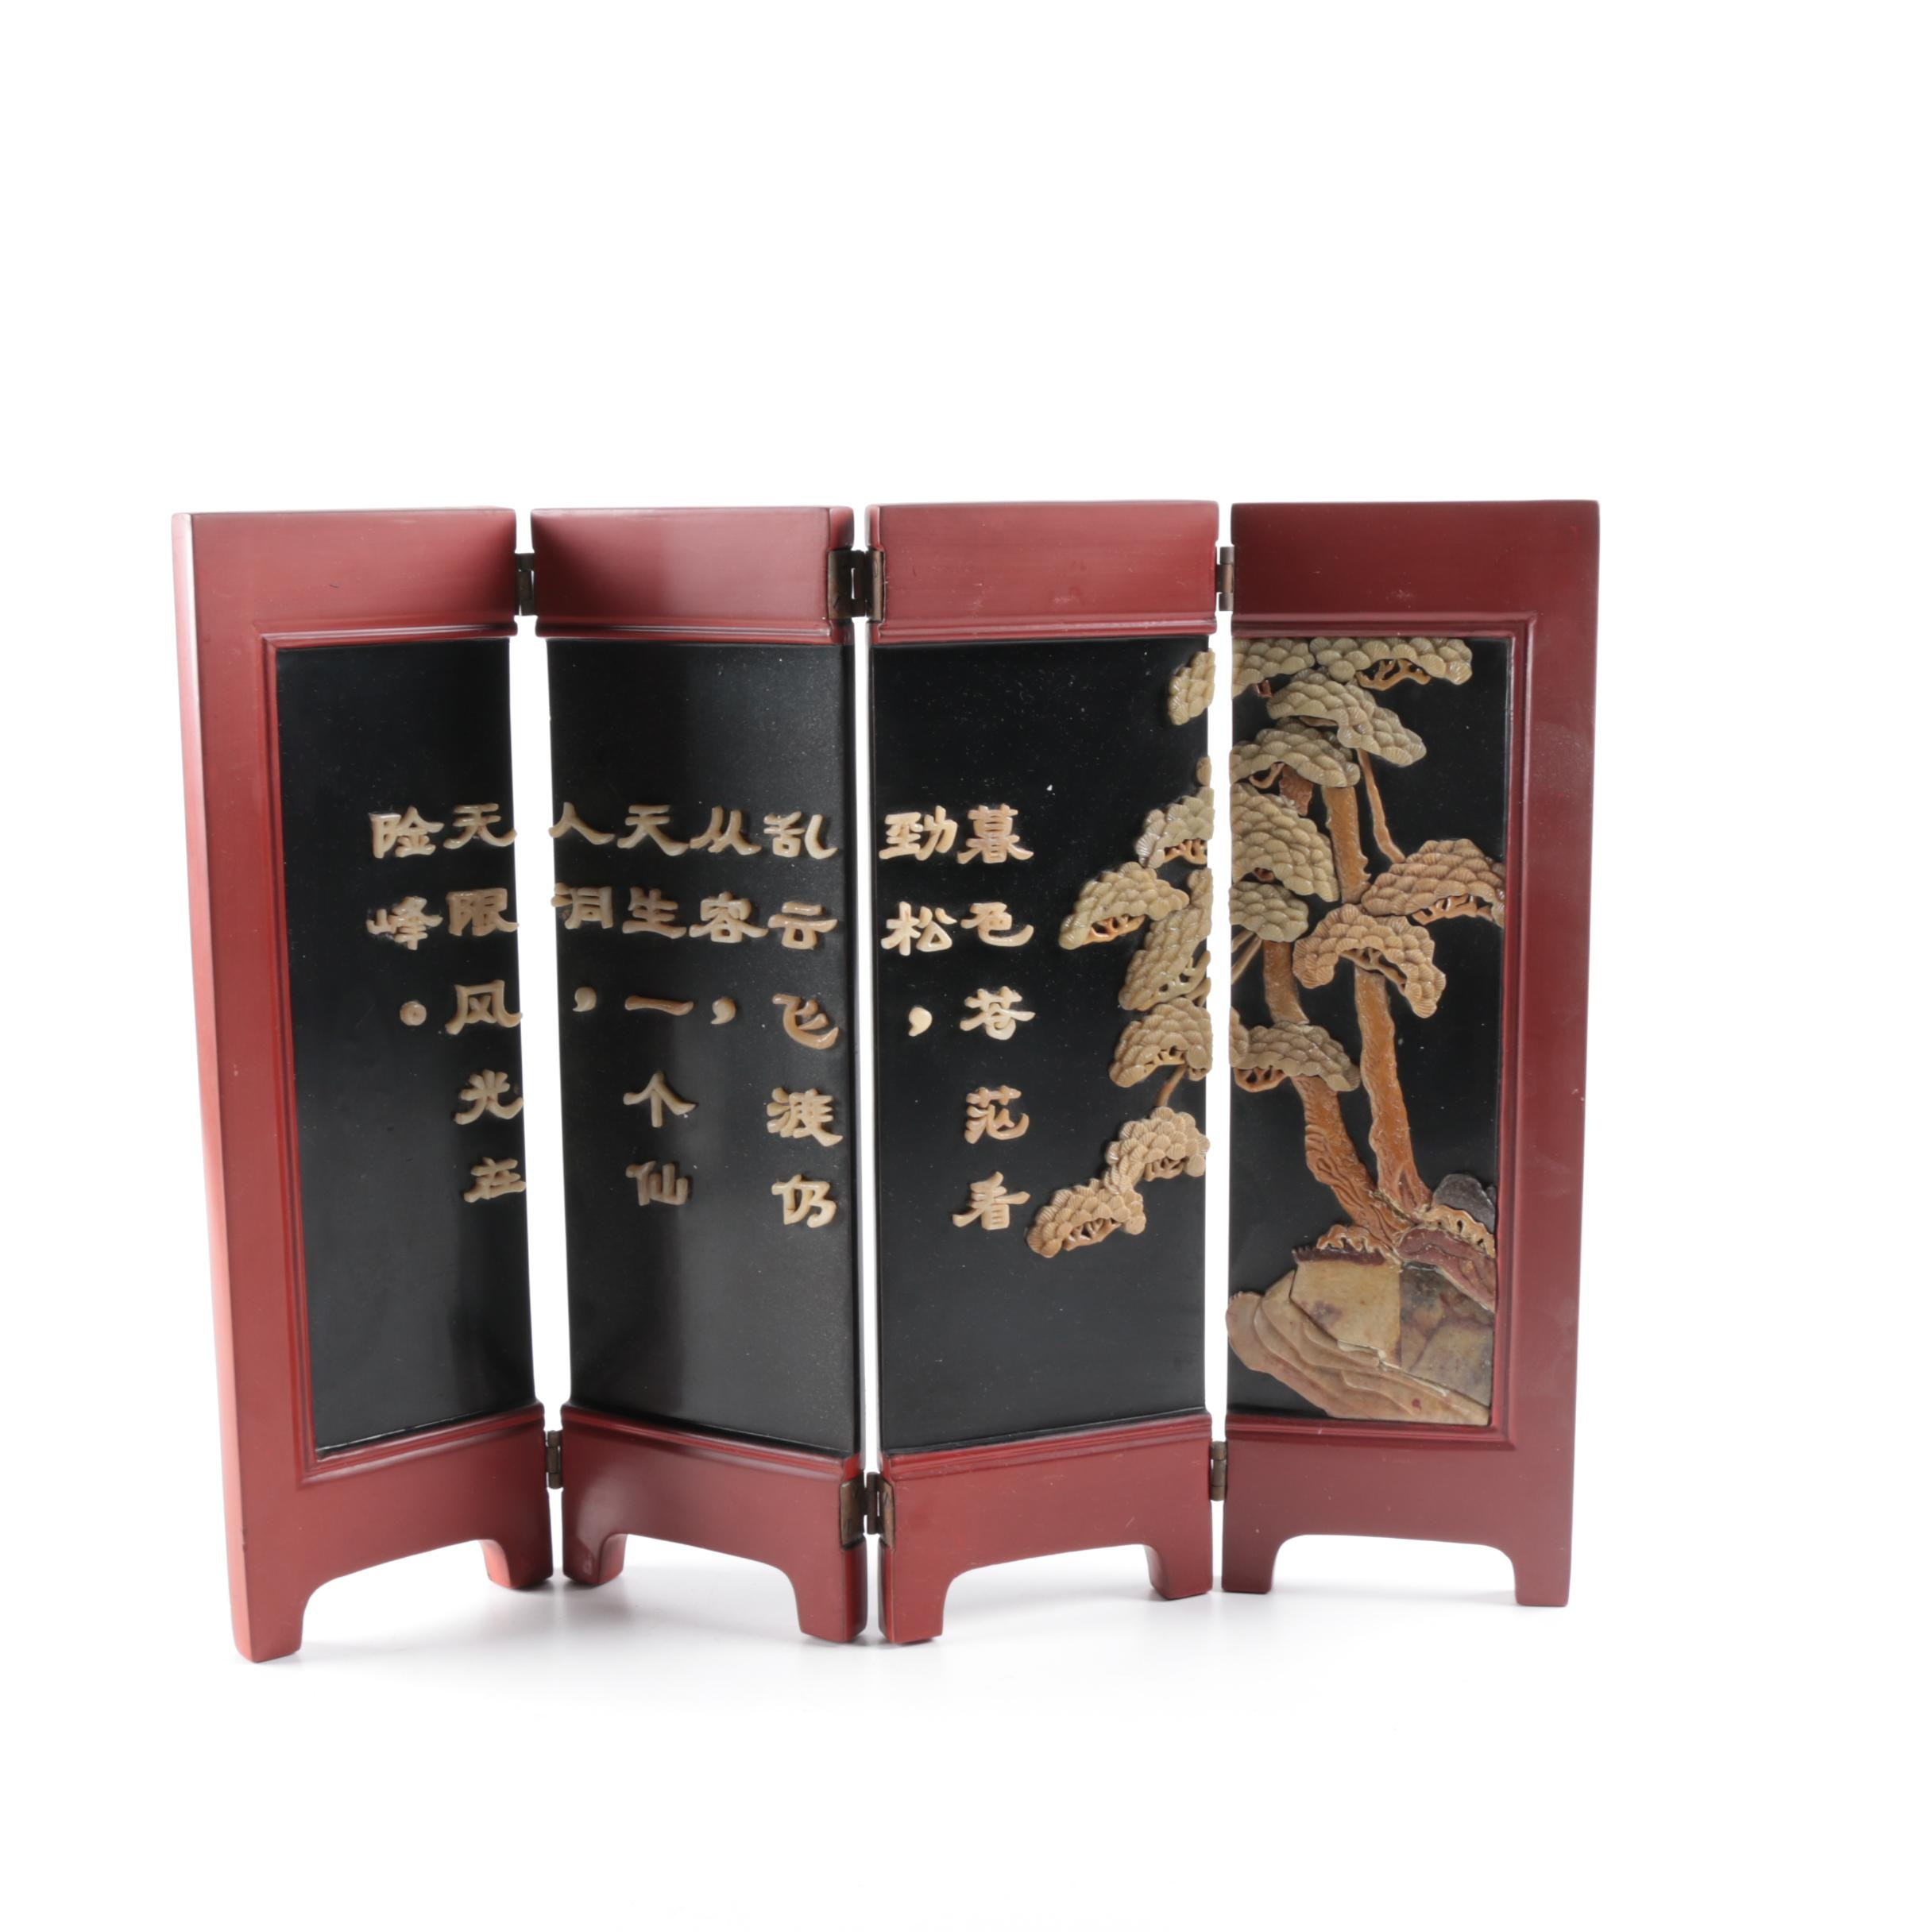 Vintage Decorative Screens Room Dividers and Room Partitions in Mid